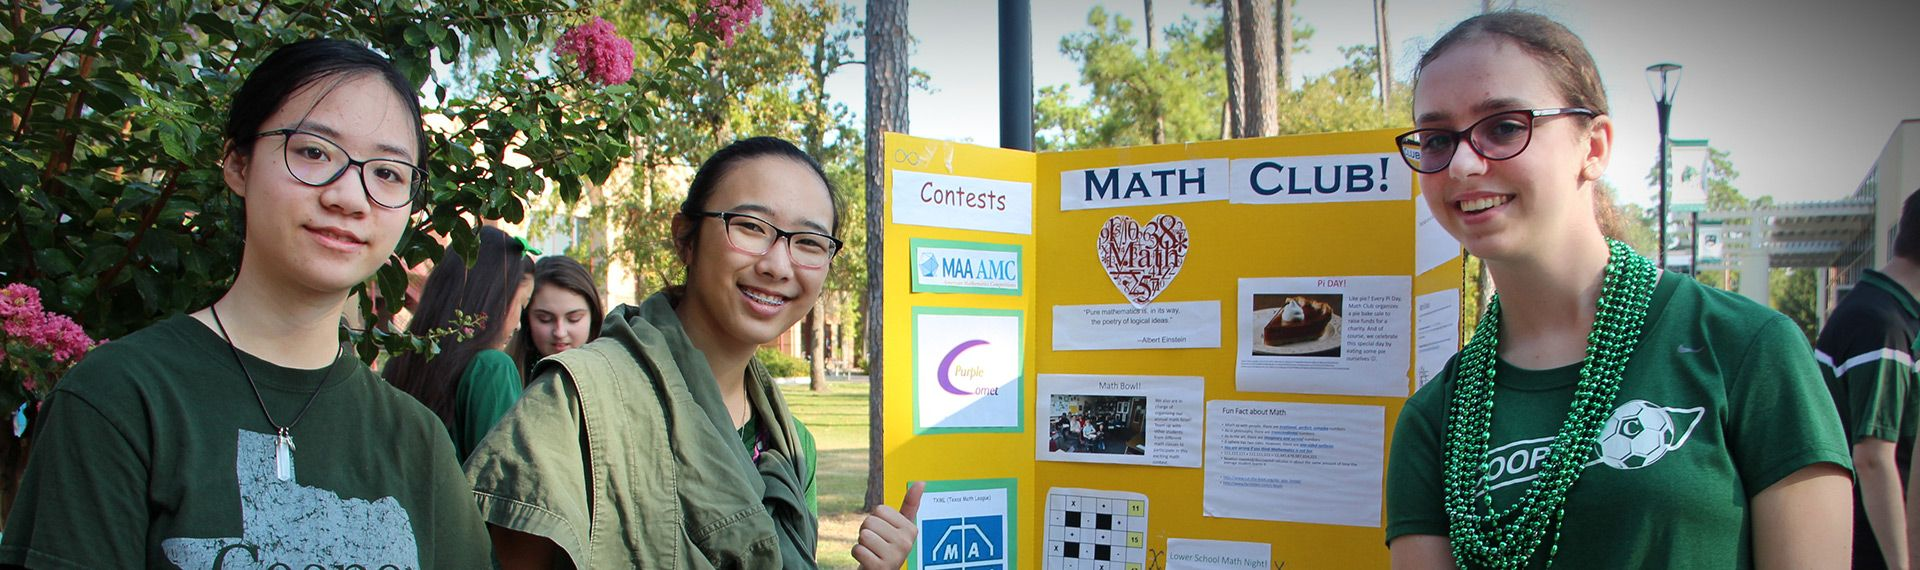 Upper School Math Club students pose at the annual Club Fair.